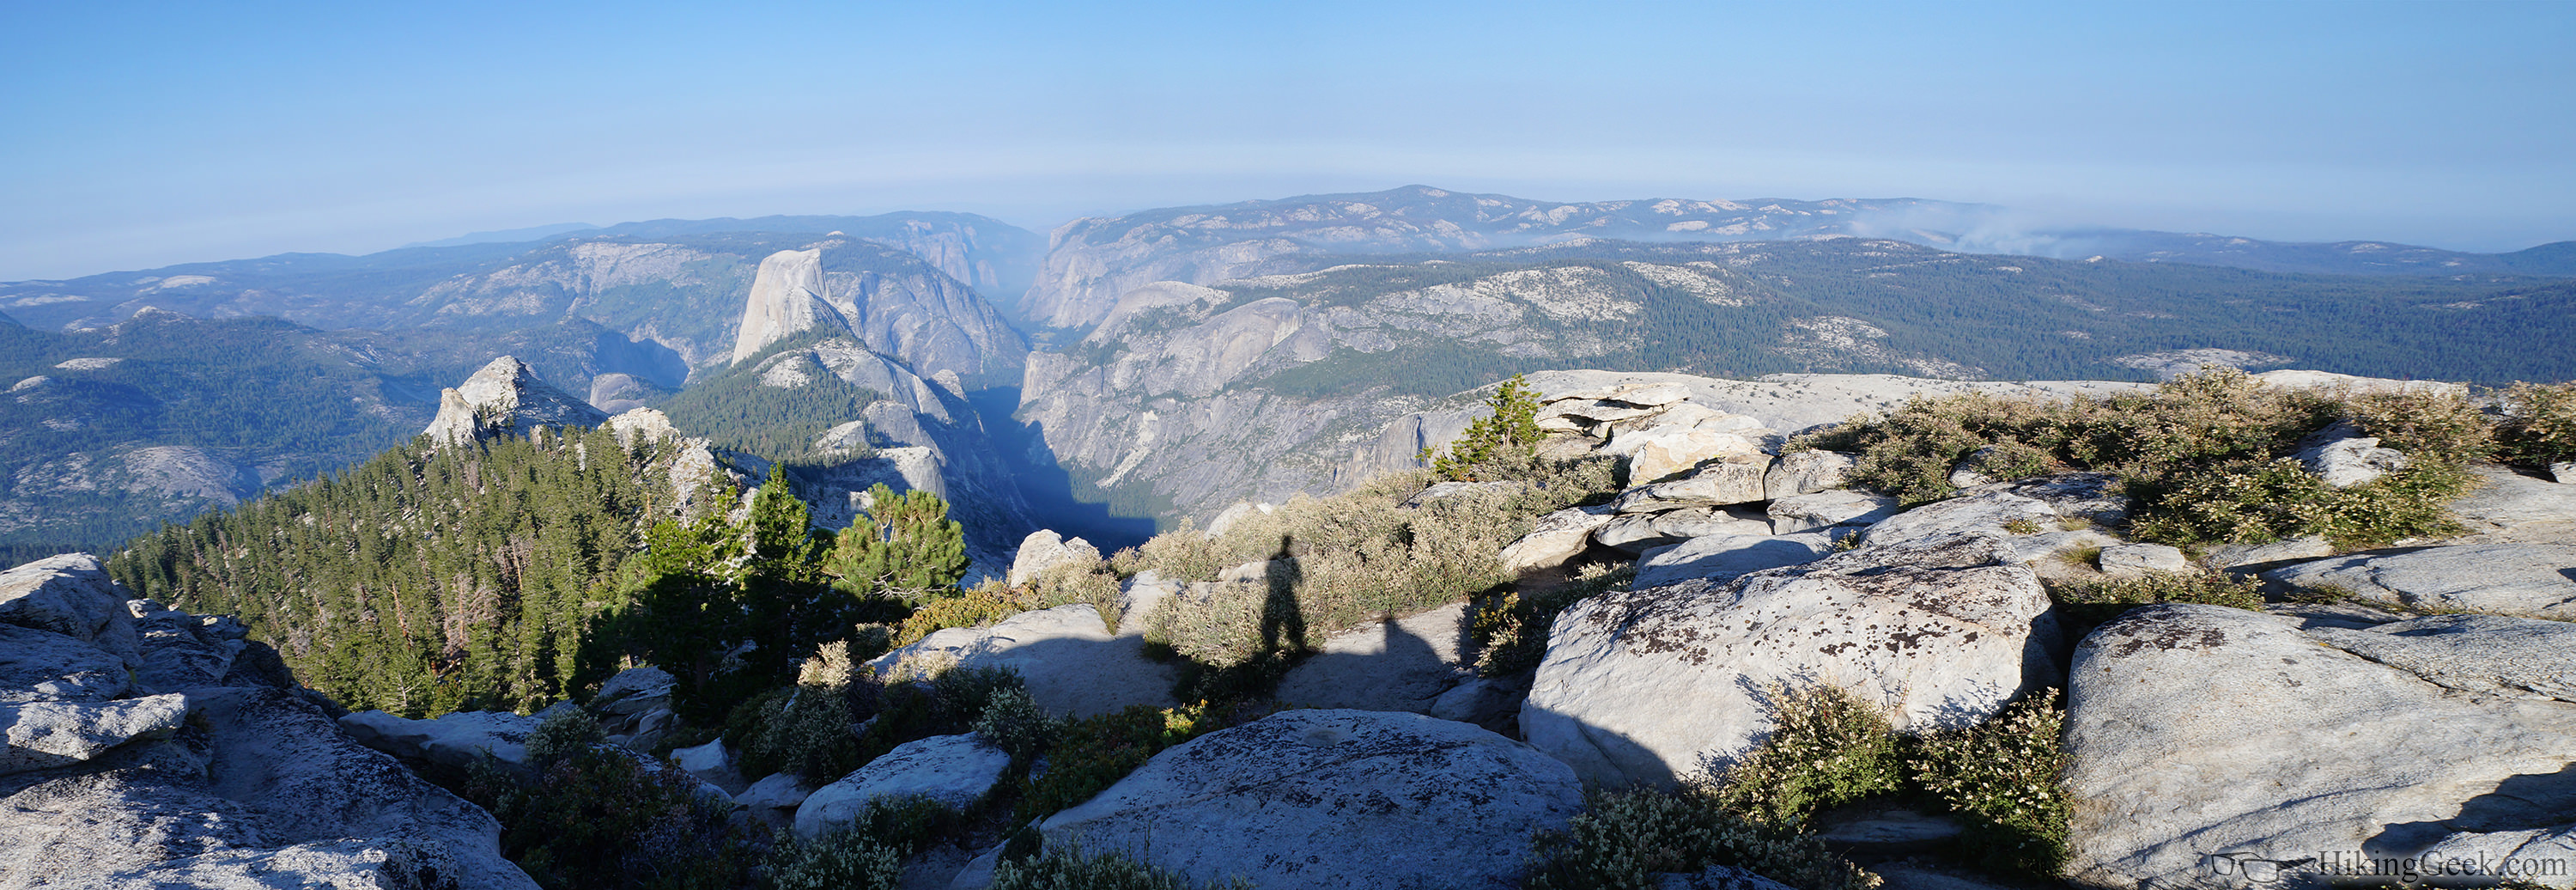 Clouds Rest Trip Report, August 09 2014